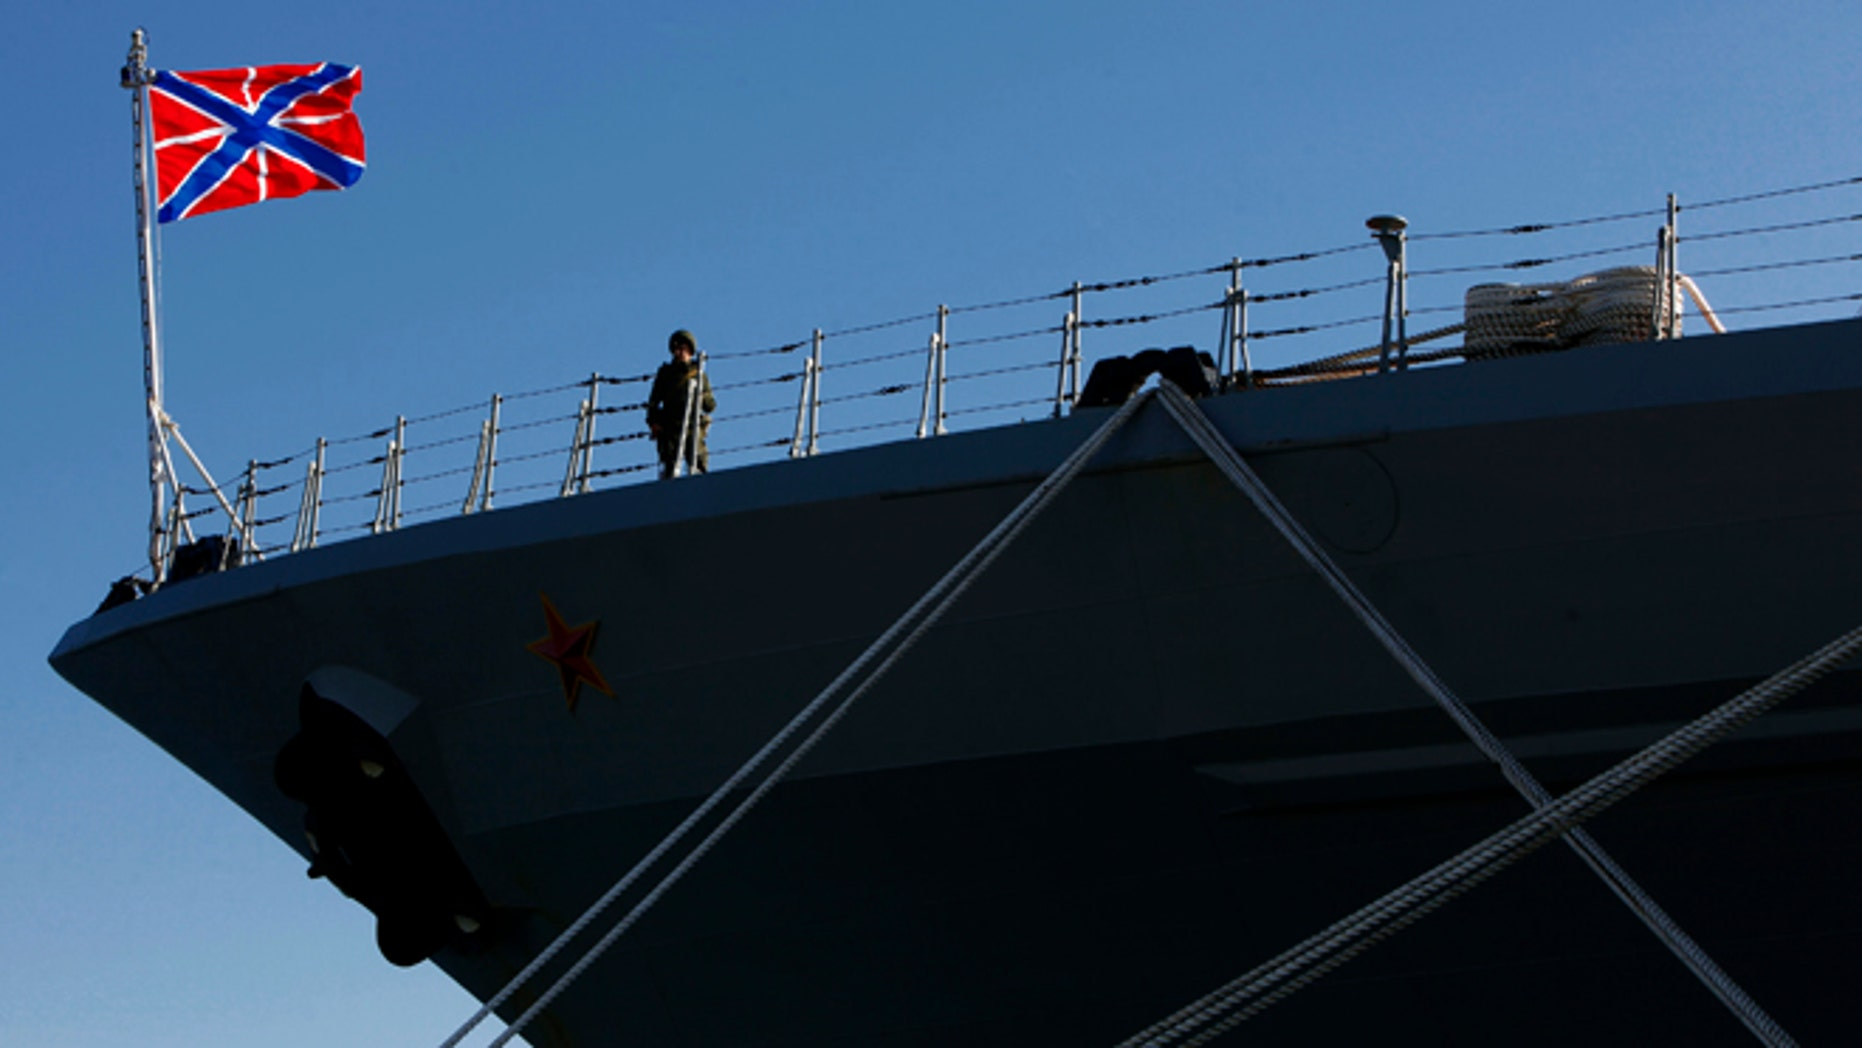 "A Russian sailor stands guard on the Russian war ship ""Peter the Great"" in southern port city of Limassol, Cyprus, on Wednesday, Feb. 12, 2014. The Russian missile cruiser ""Peter the Great"" which is currently deployed in the region made a port of call at Cyprus' largest port. (AP Photo/Petros Karadjias)"